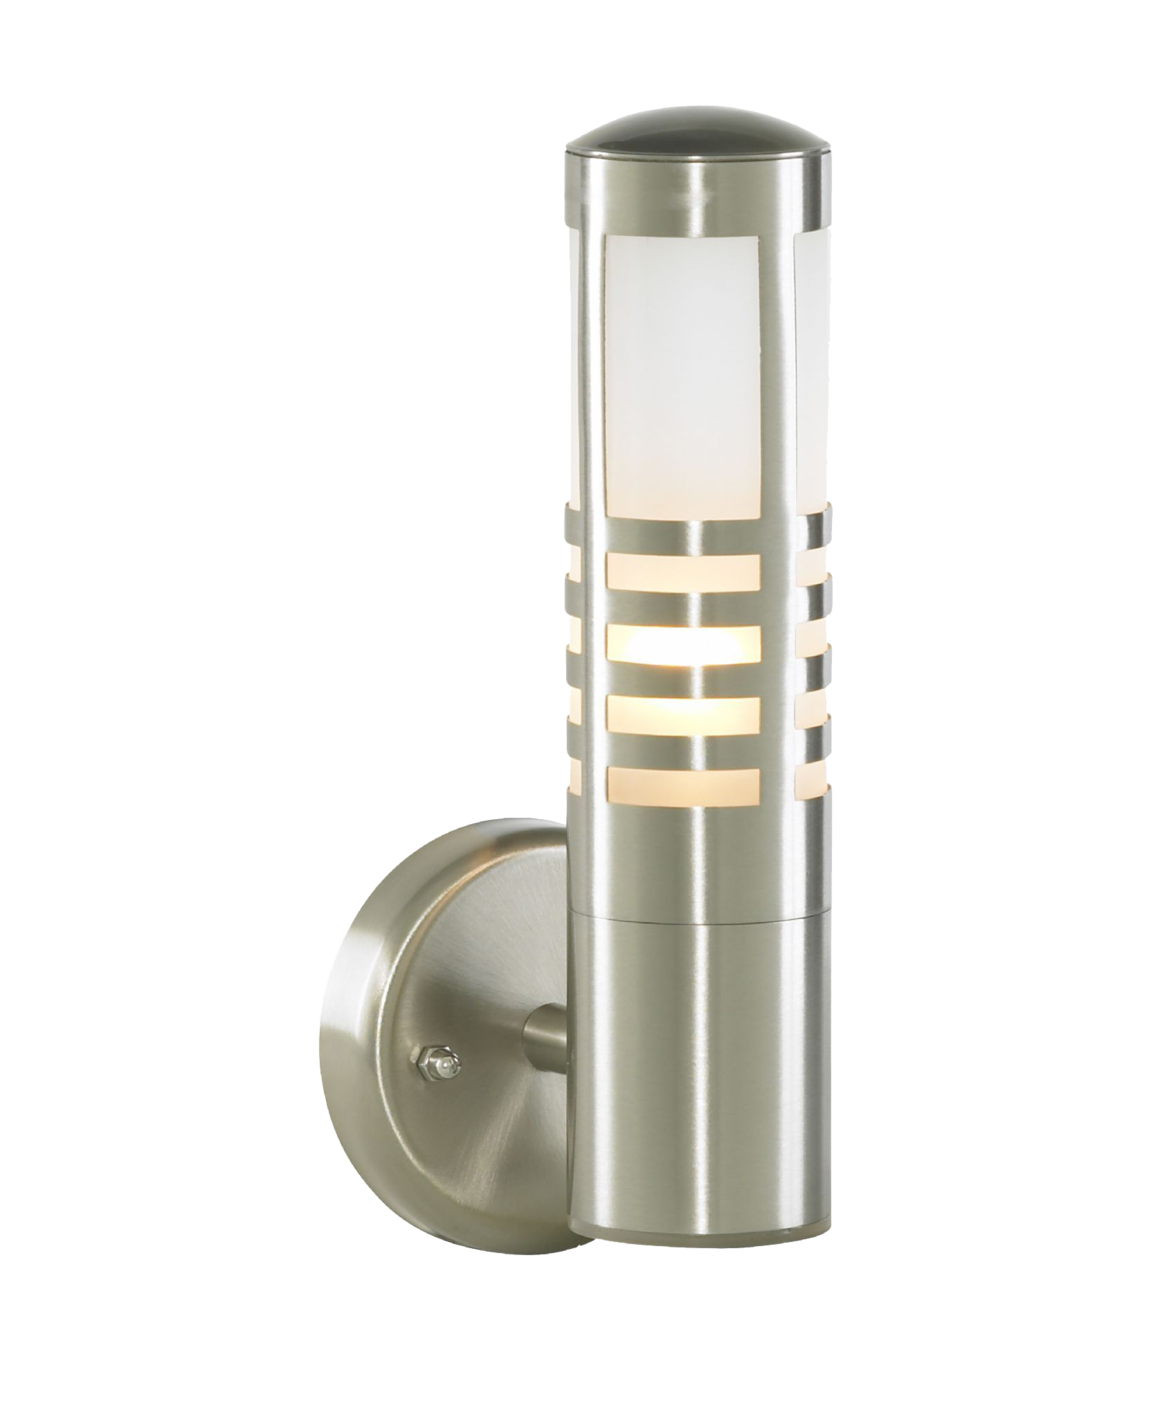 Lampsy stainless steel slatted outdoor wall light outdoor wall